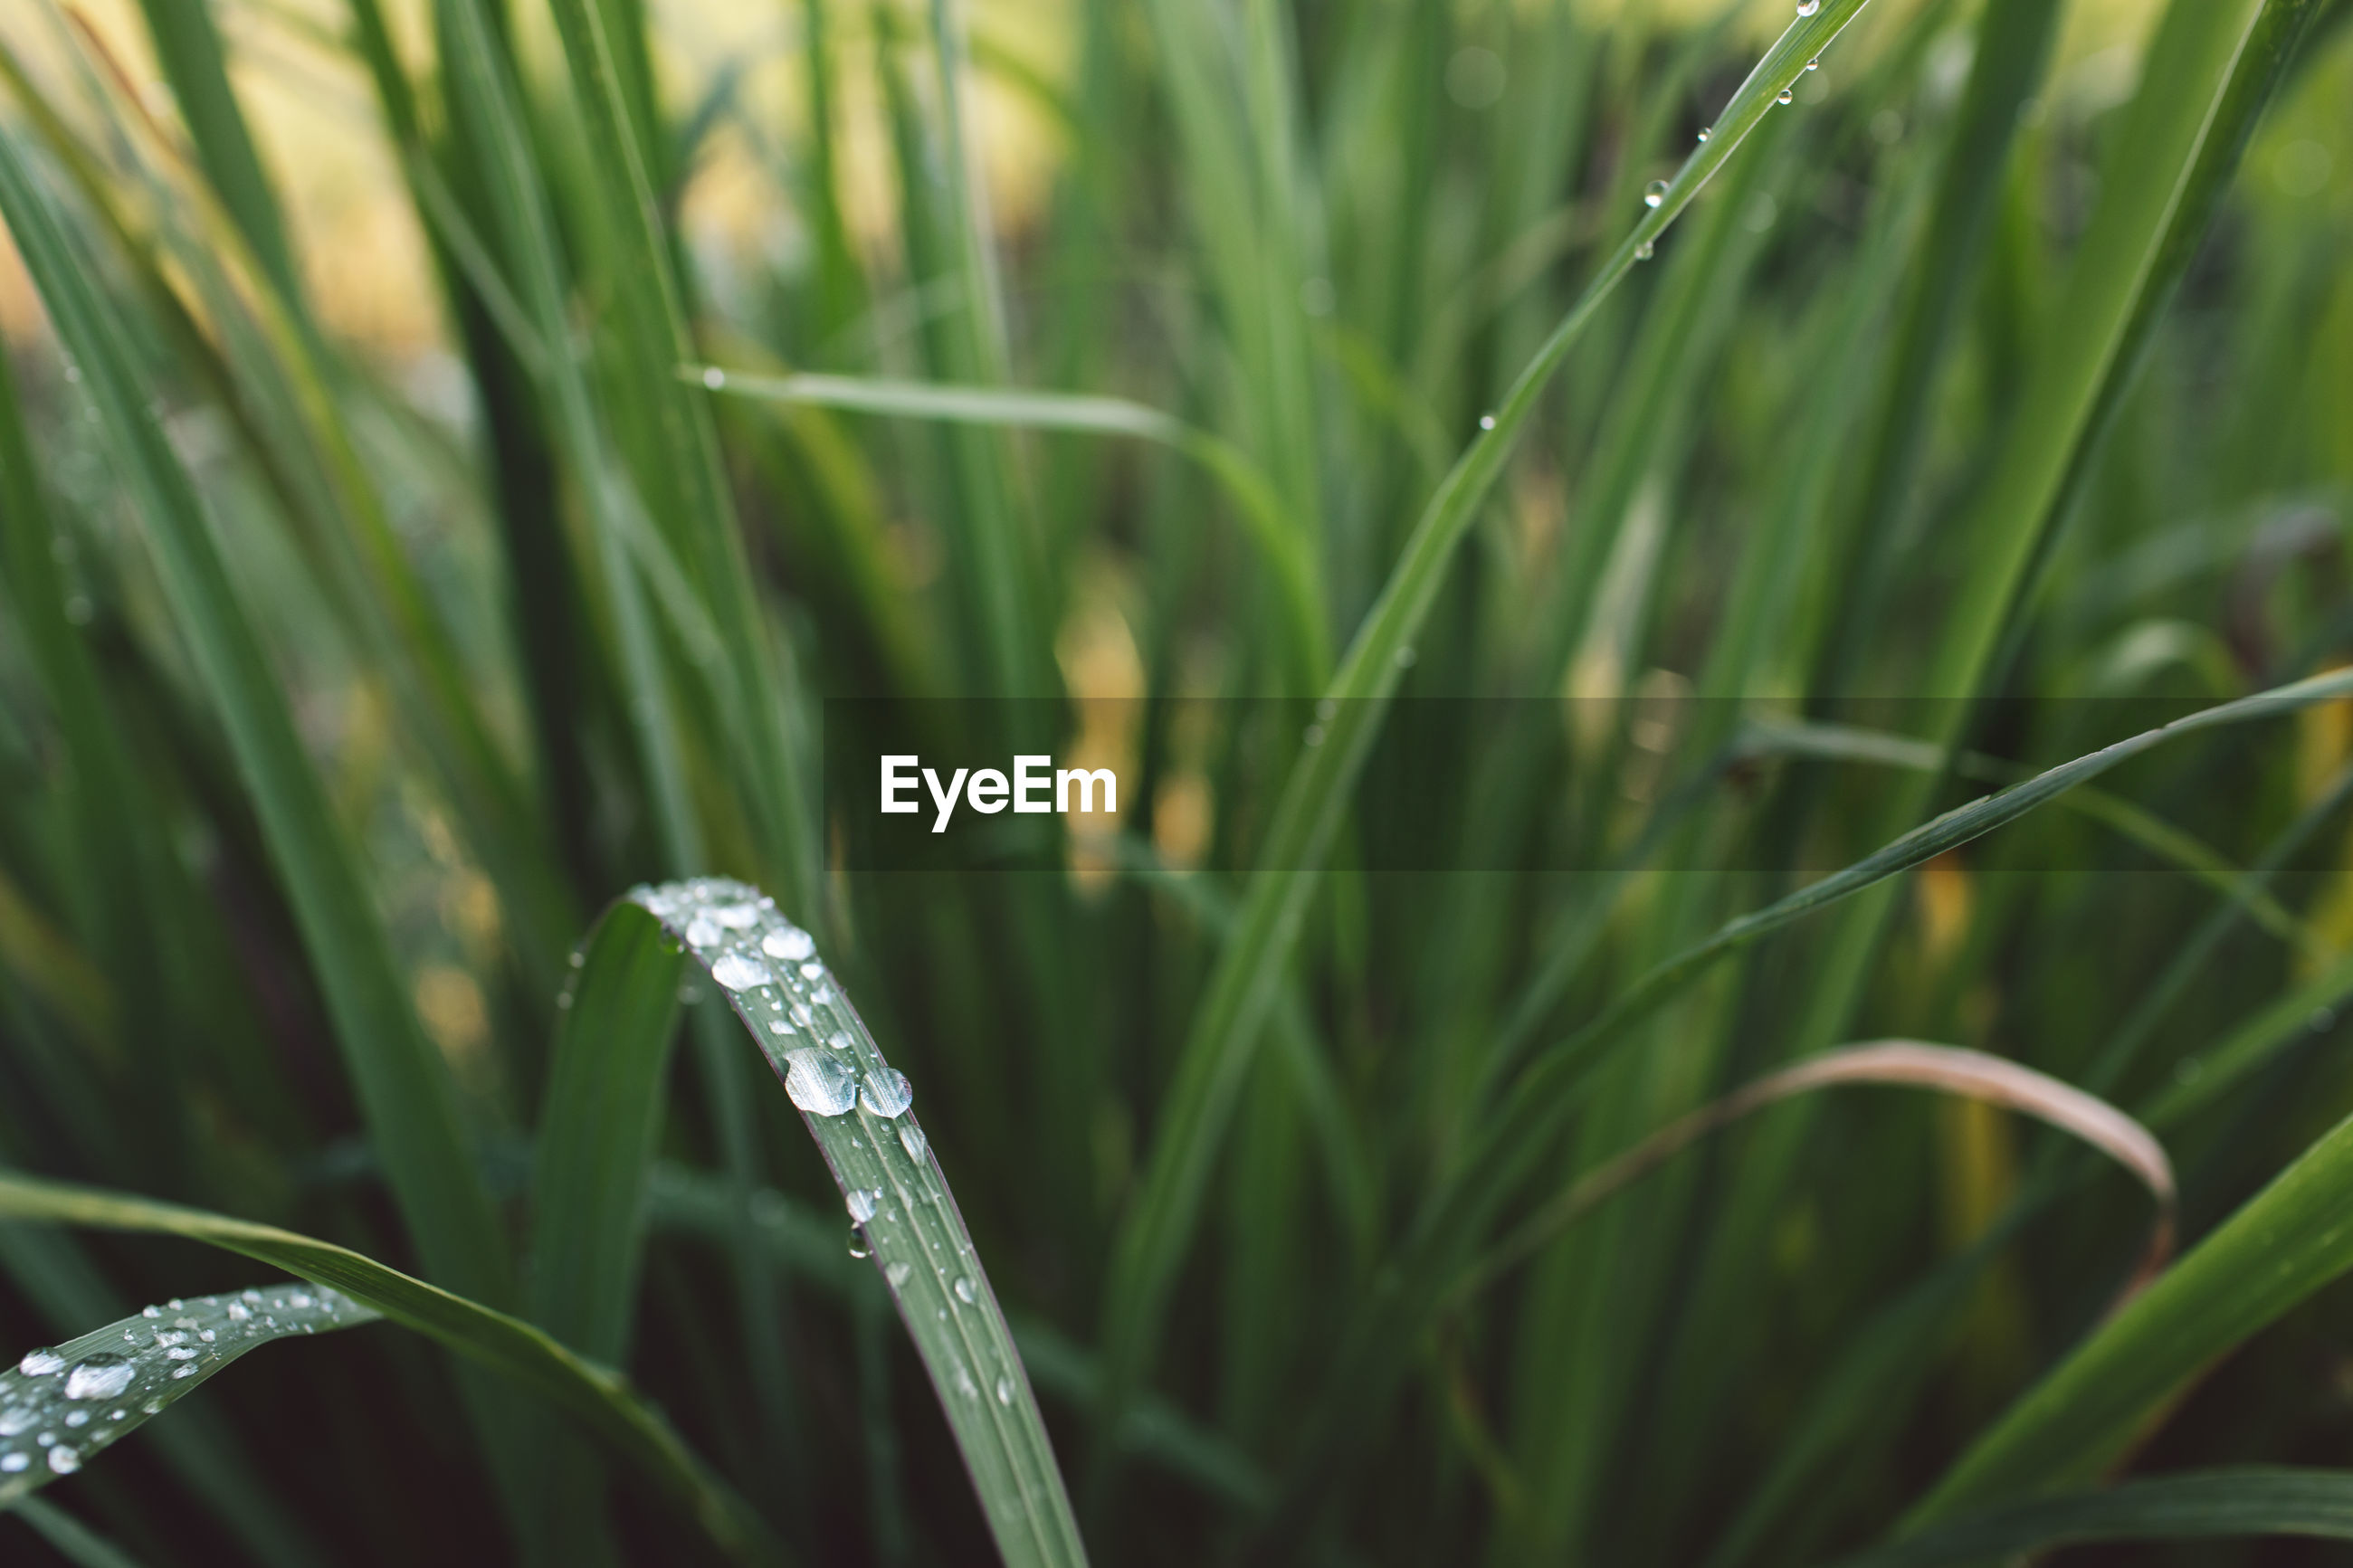 CLOSE-UP OF WET GRASS ON RAINY DAY